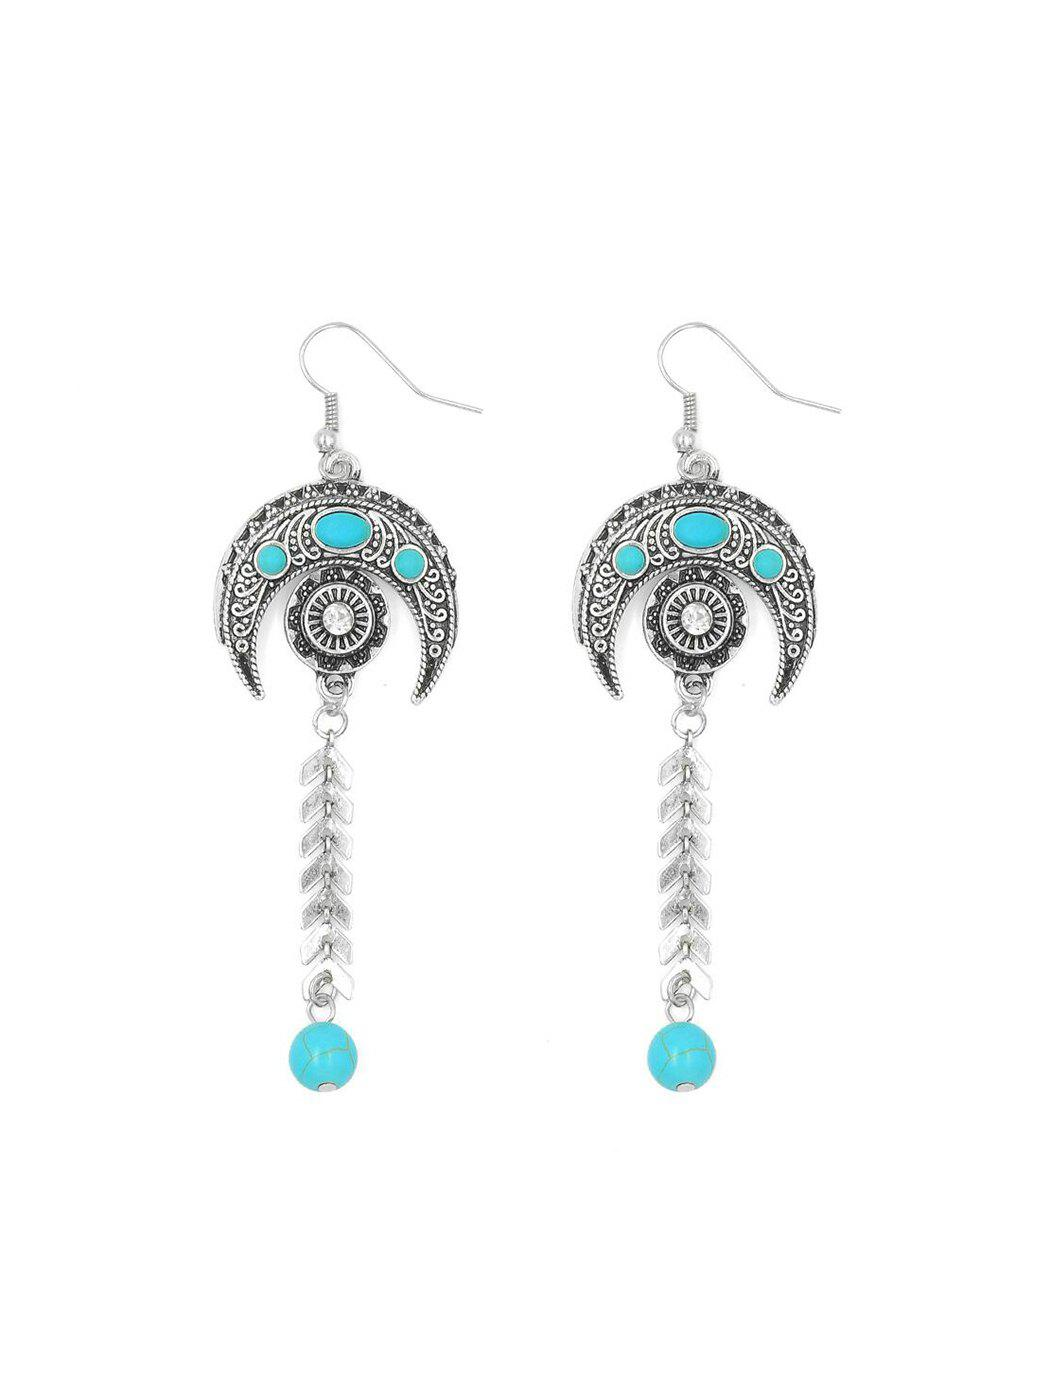 Online Bohemian Carved Moon Herringbone Turquoise Earrings